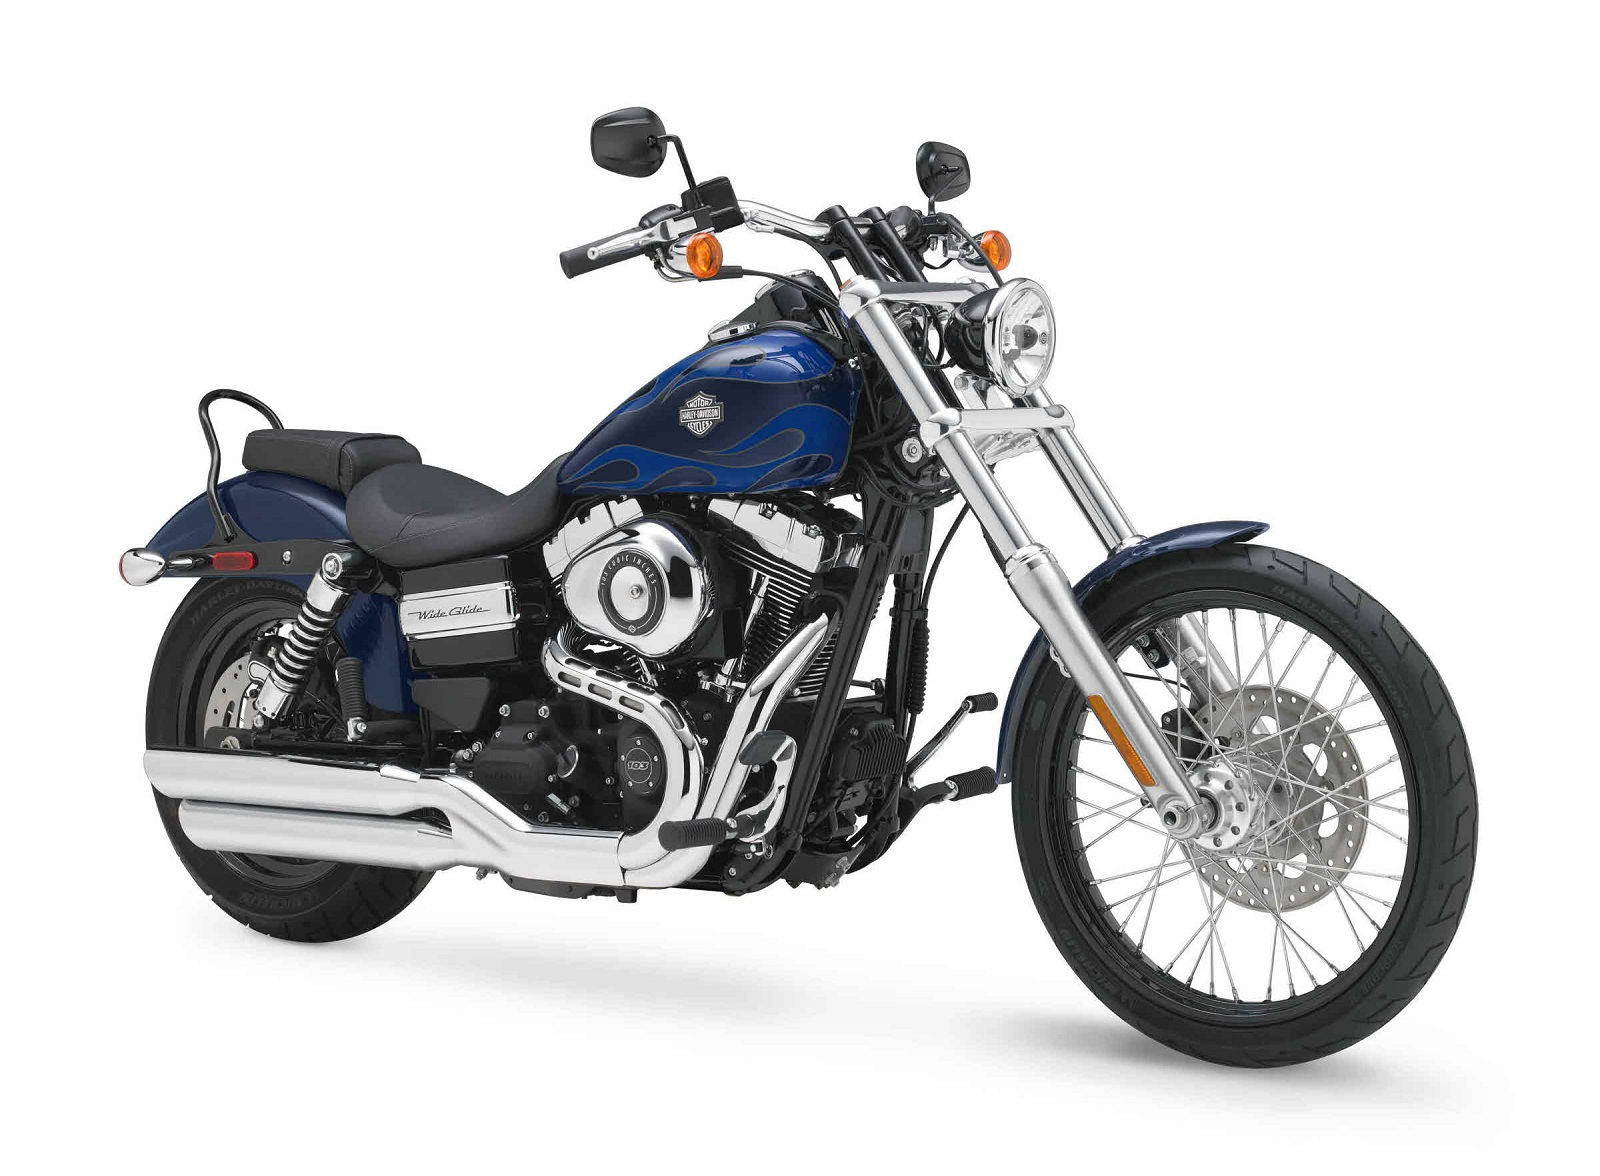 2012 Harley-Davidson Dyna FXDWG Wide Glide | Top Speed